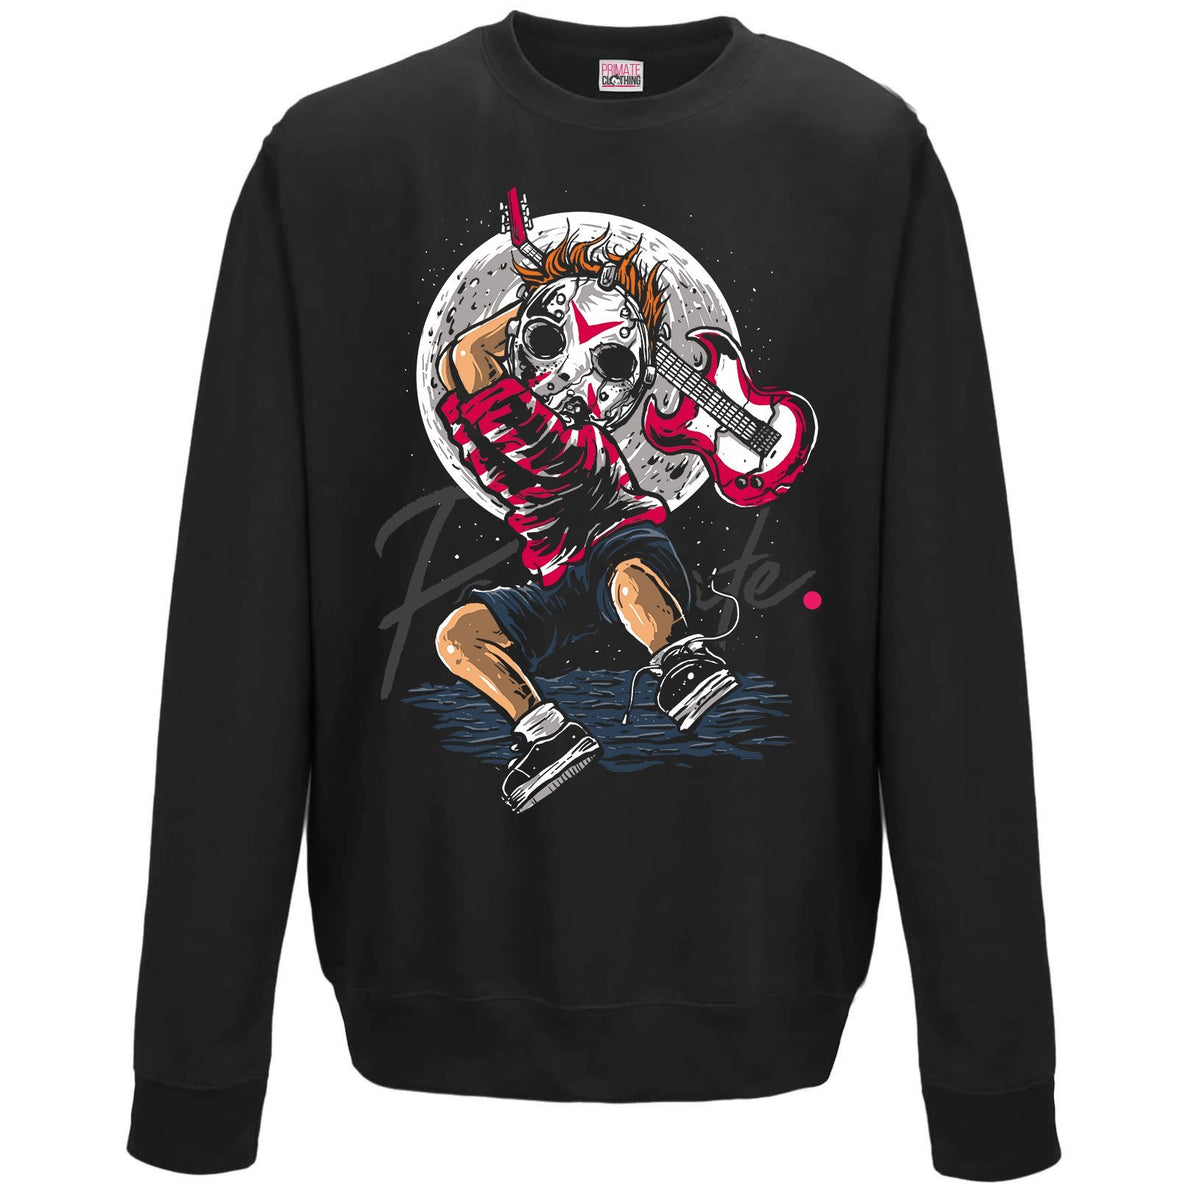 Break The Noise - Unisex Sweatshirt Primate. Fashion Adults: Small